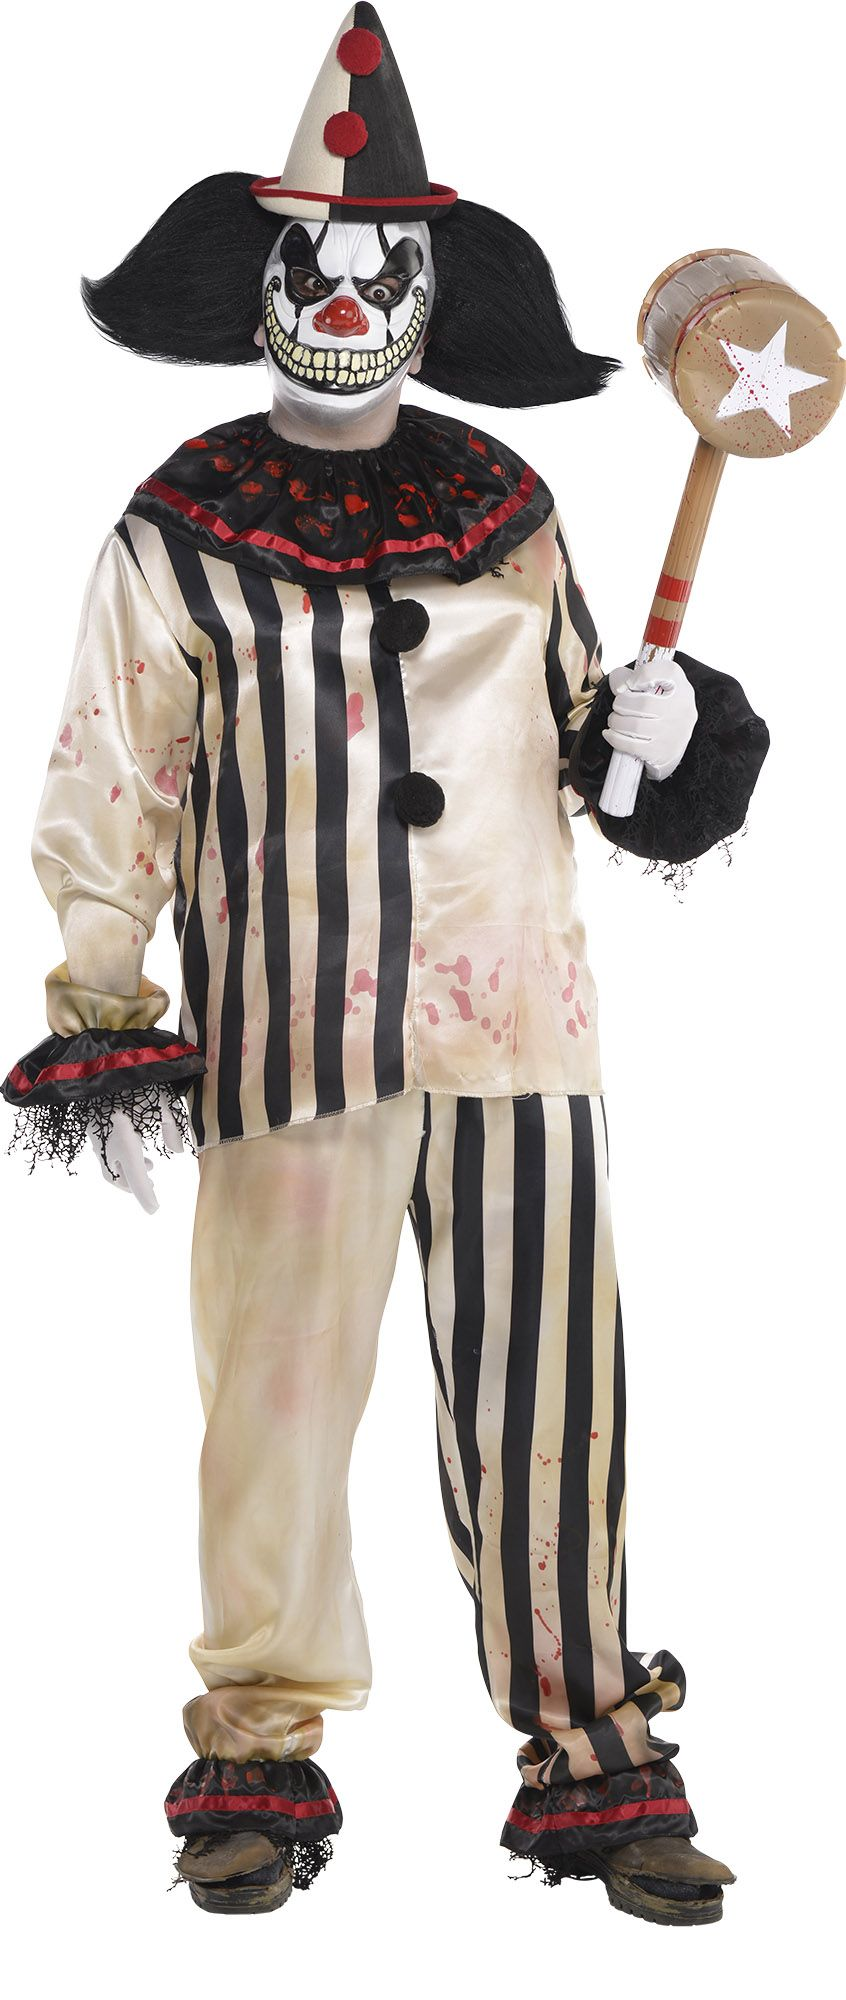 Create Your Own Look - Men's Freak Show Clown #1